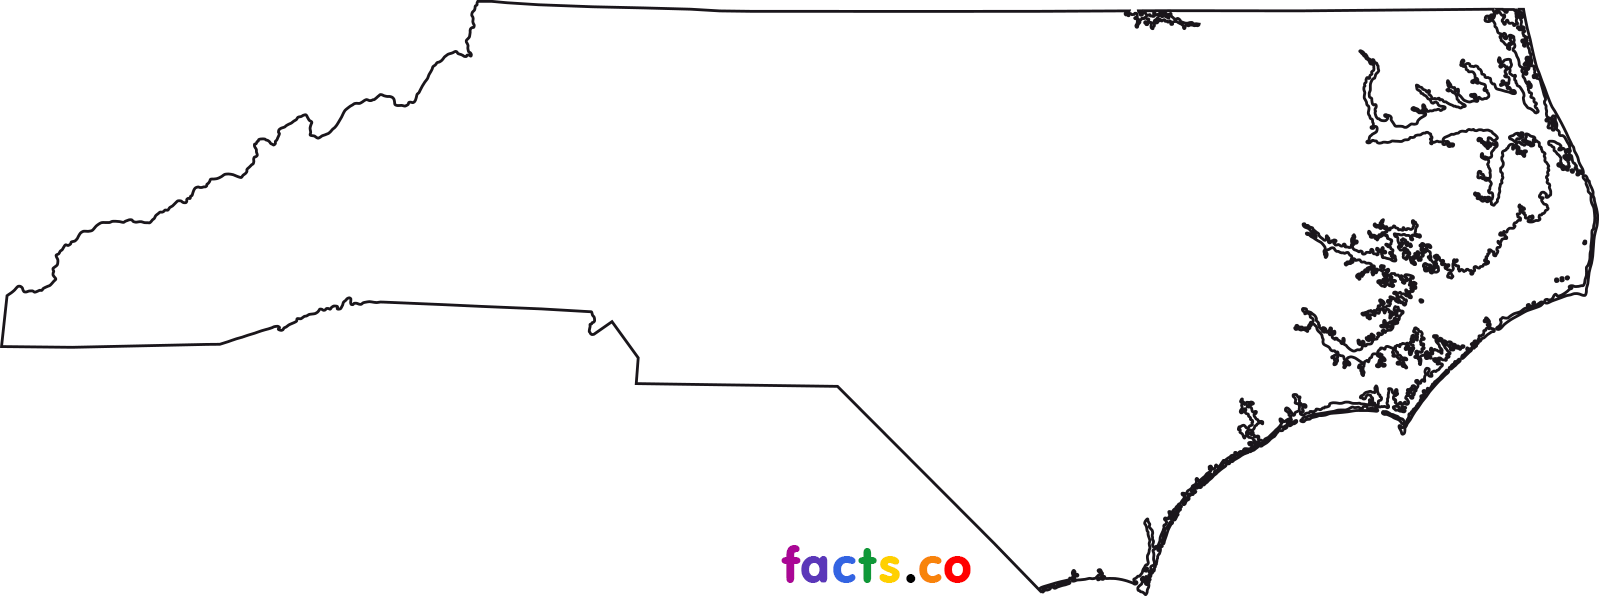 1600x596 North Carolina Clipart North Carolina Outline Png